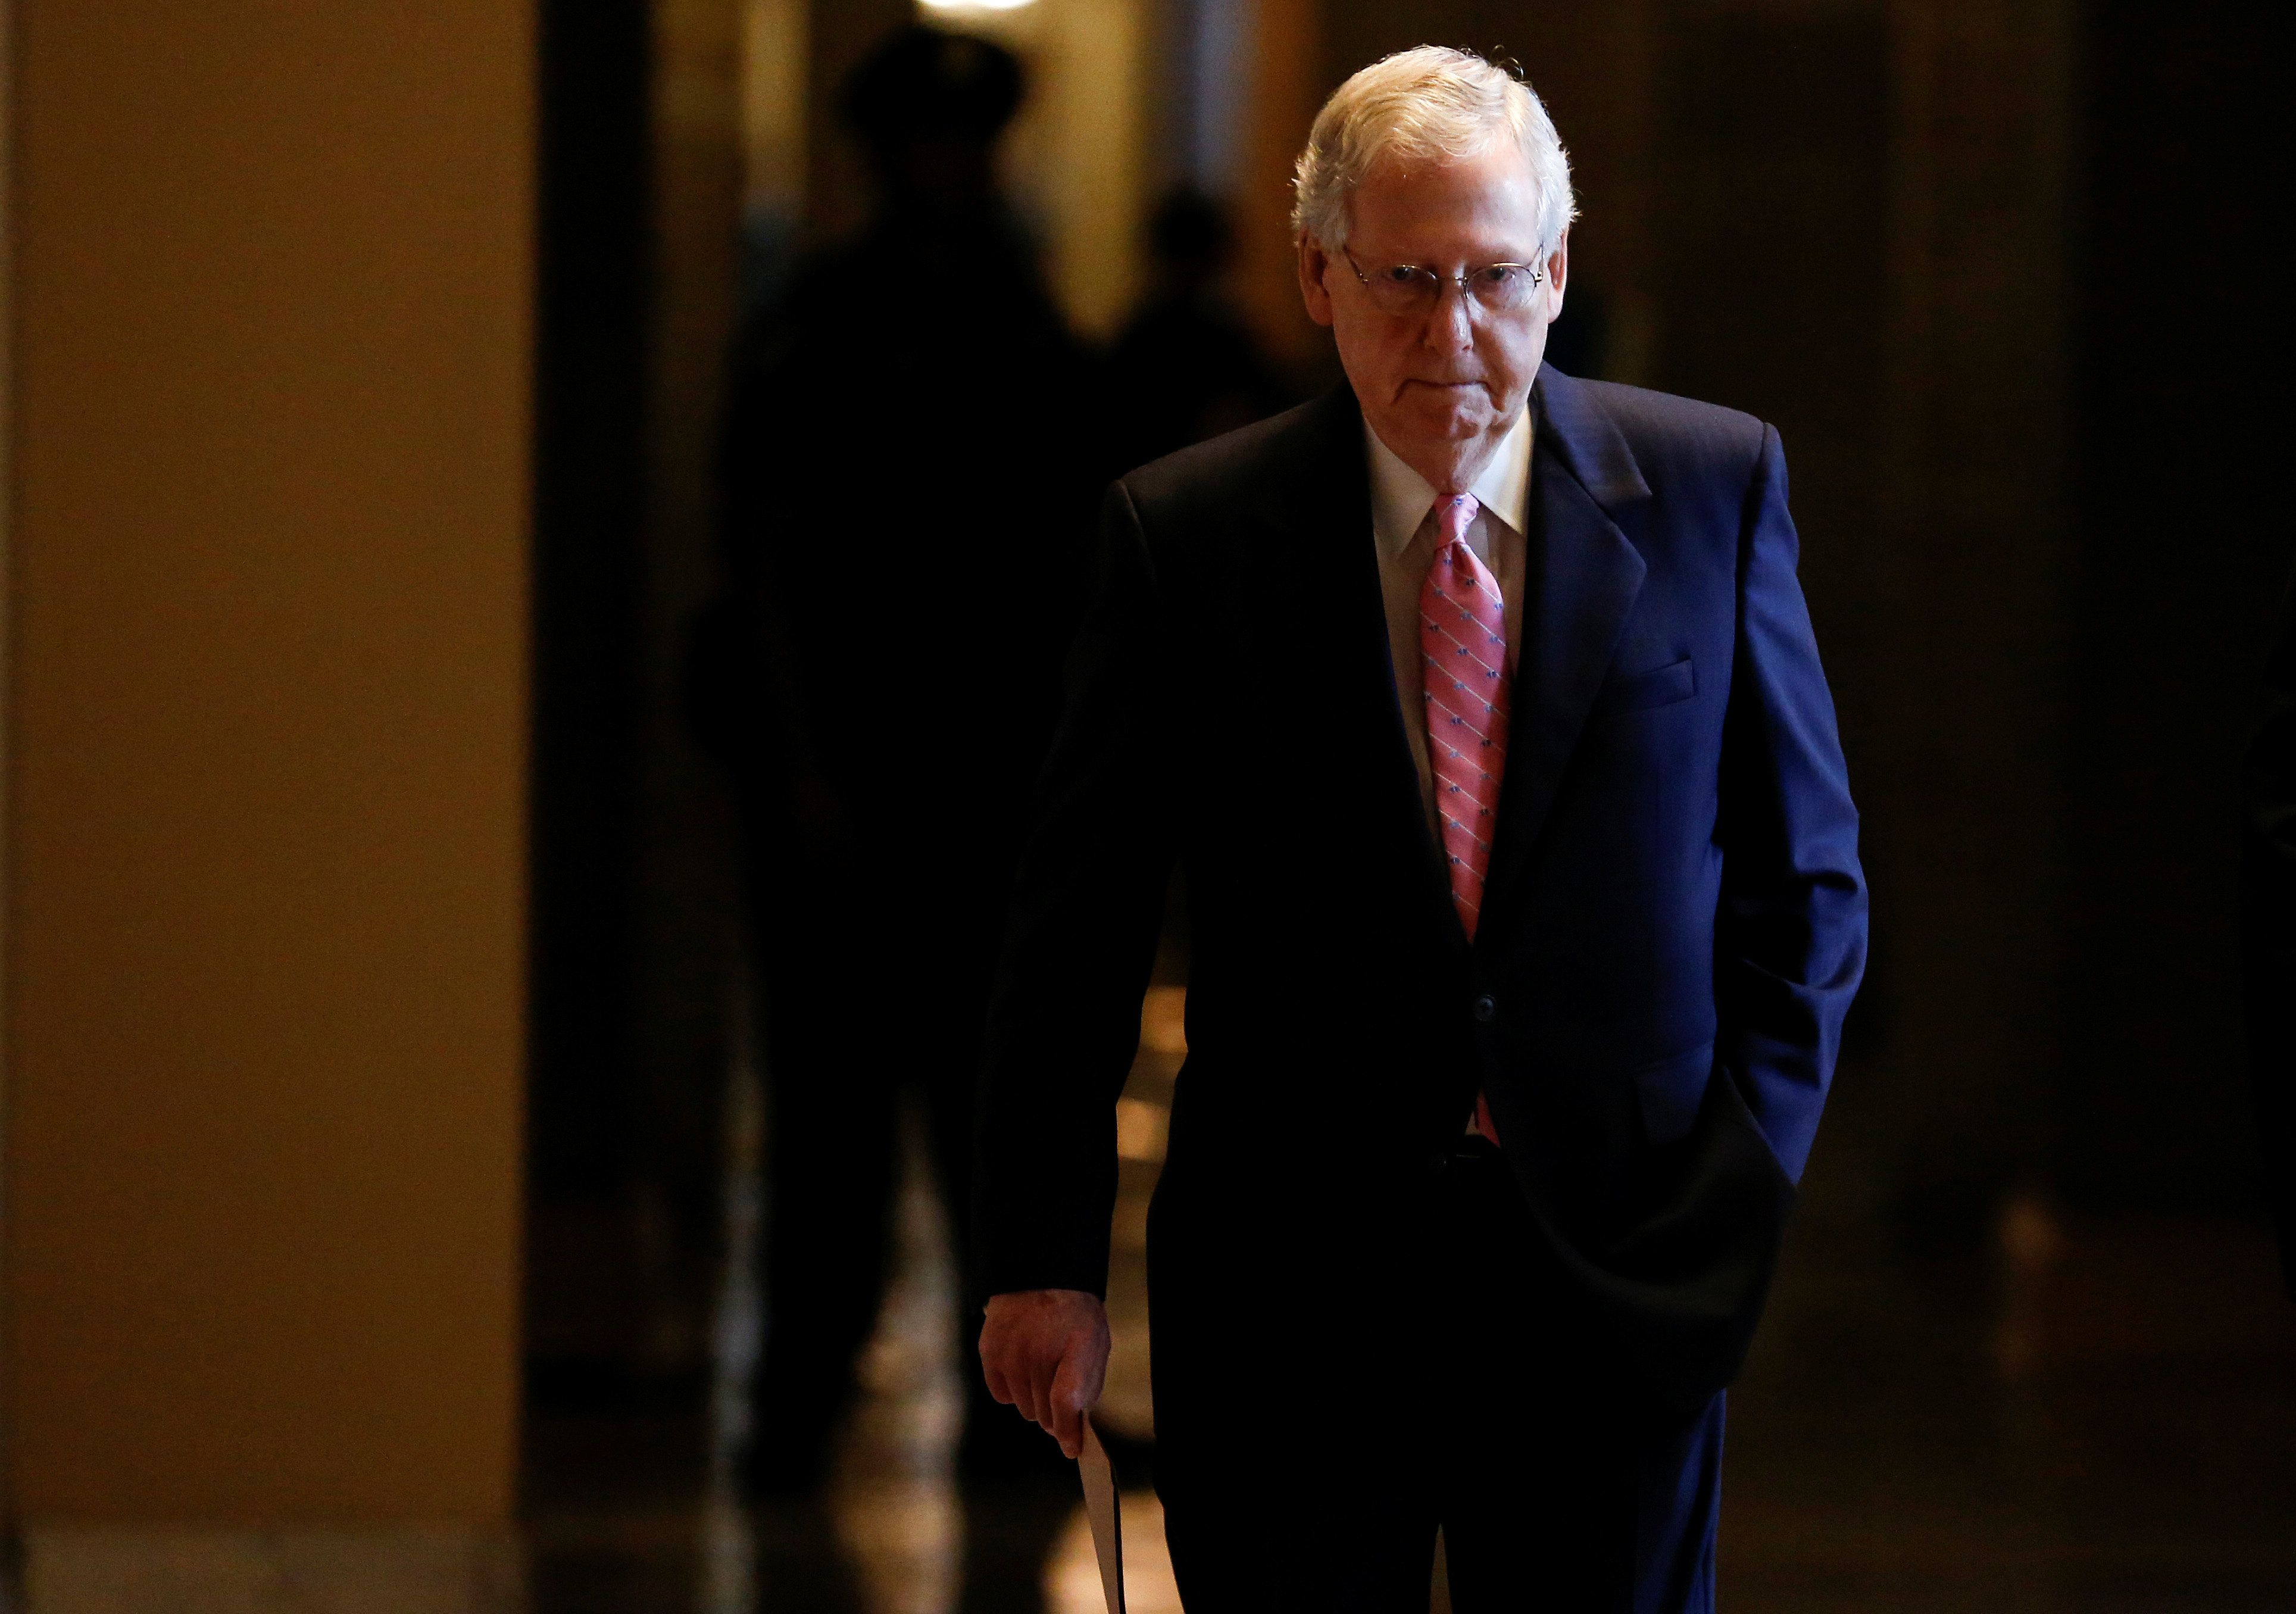 Senate Majority Leader Mitch McConnell (R-KY) walks to the Senate Chamber at the U.S. Capitol in Washington, U.S., August 22, 2018. REUTERS/Joshua Roberts